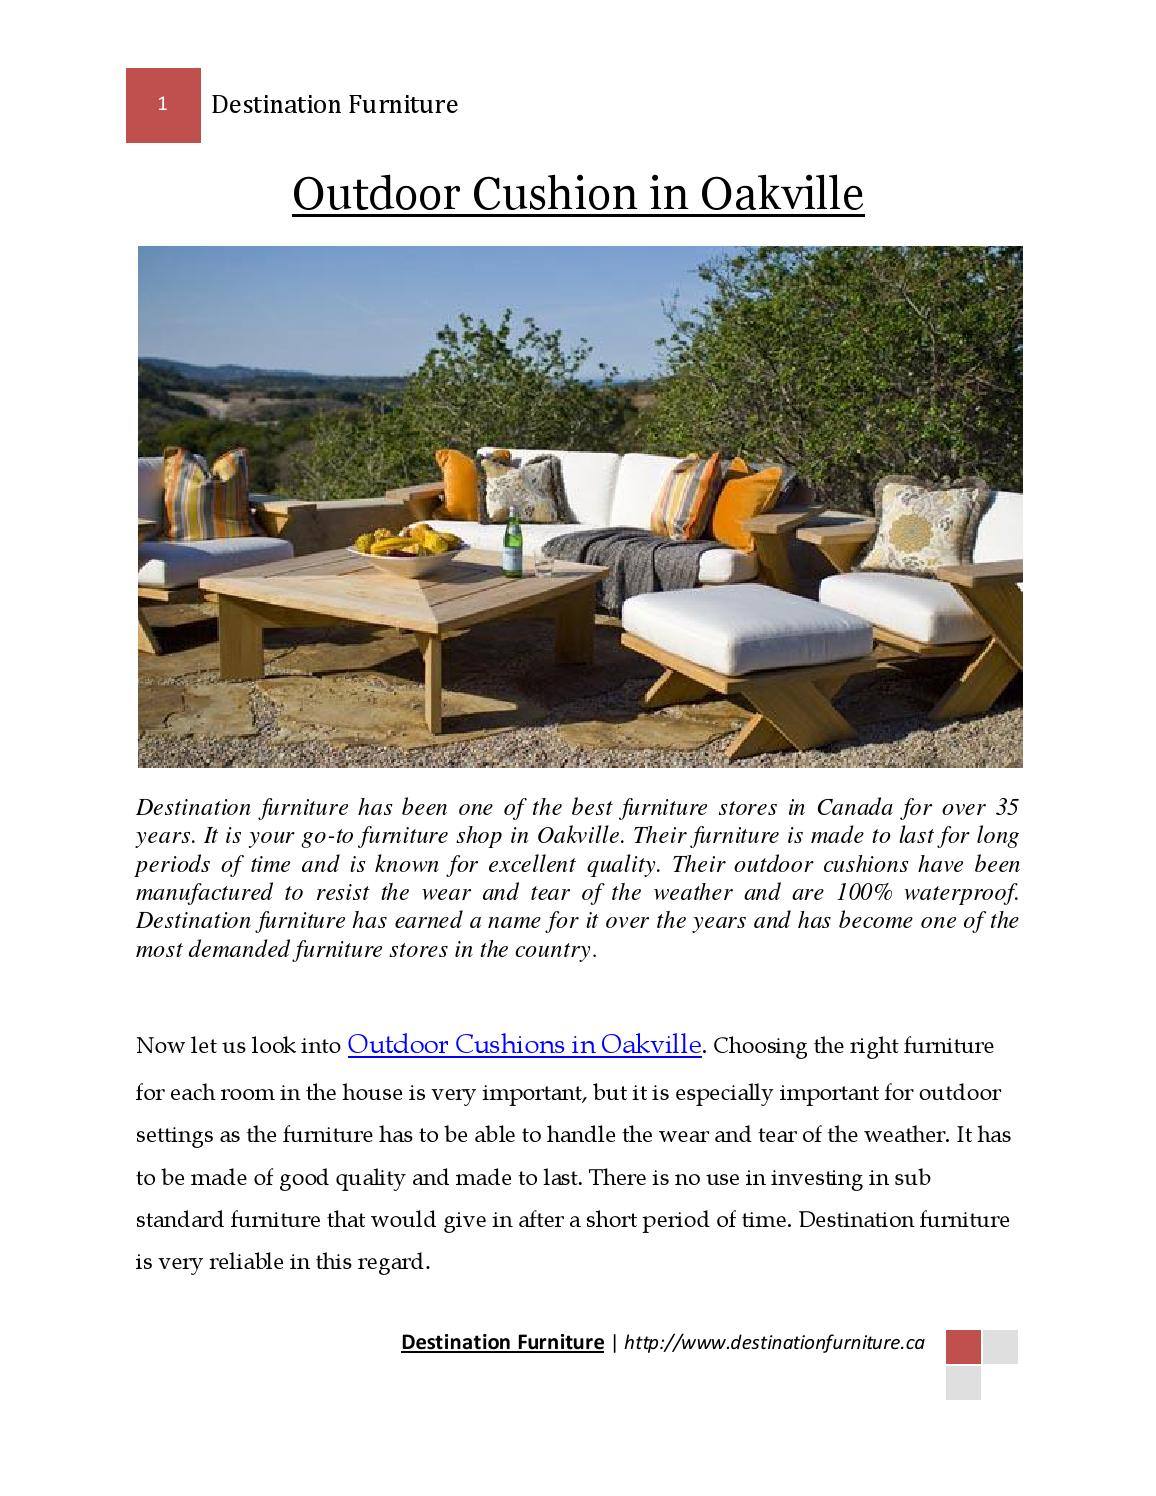 Oakville Outdoor Furniture Outdoor Cushion Oakville By Destination Furniture Issuu